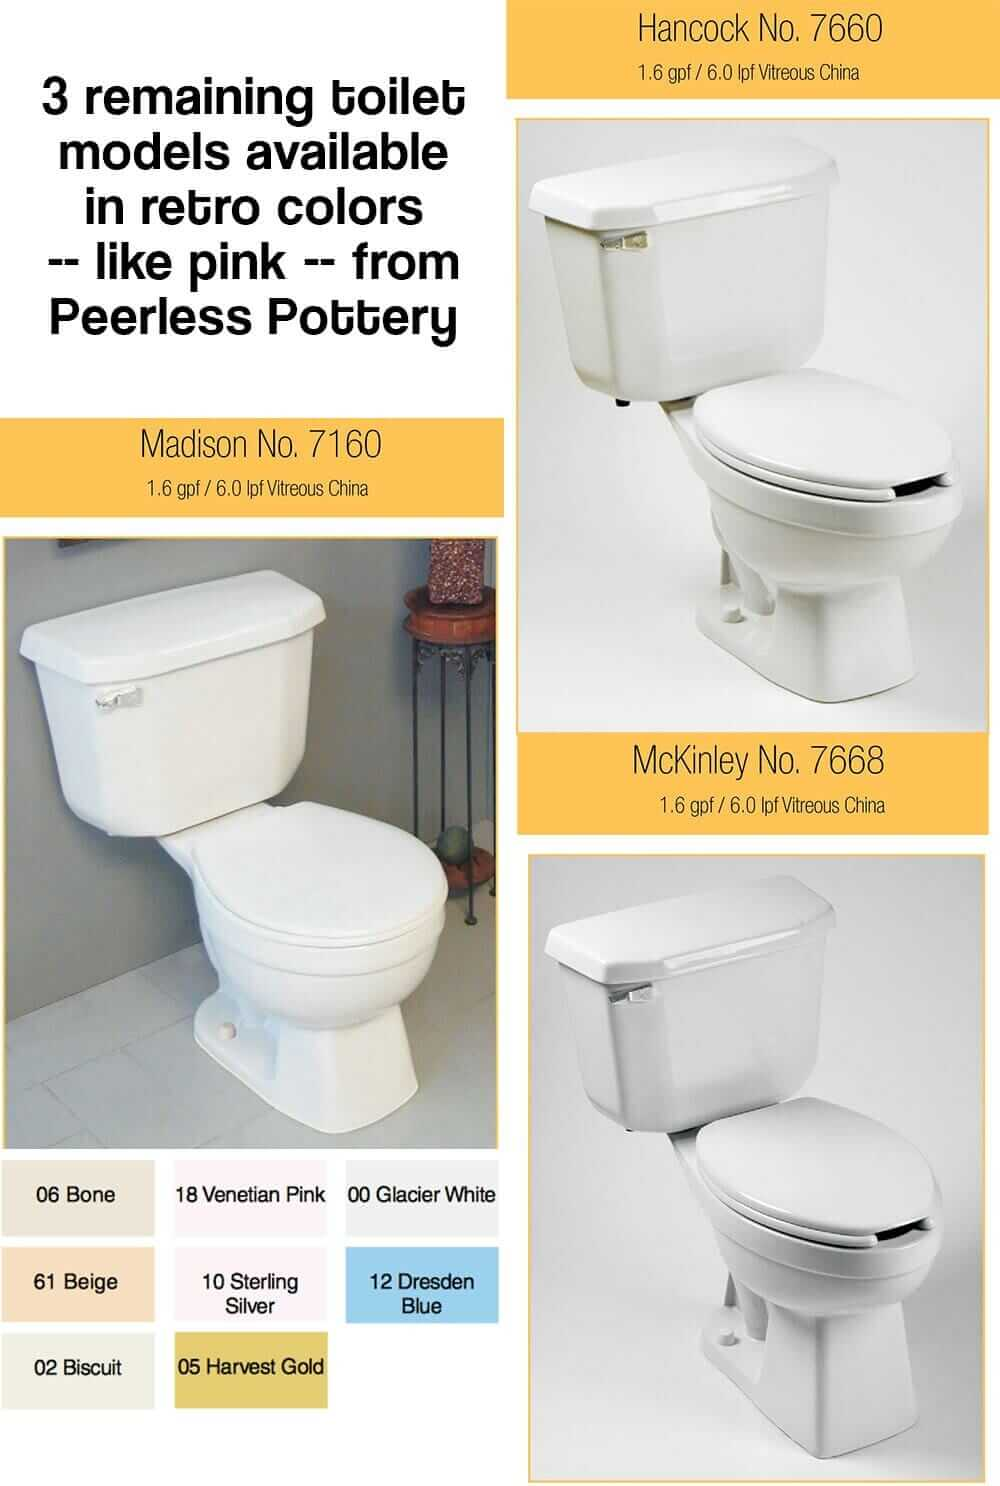 Where to buy pink, blue, beige and harvest gold toilets - UPDATE ...